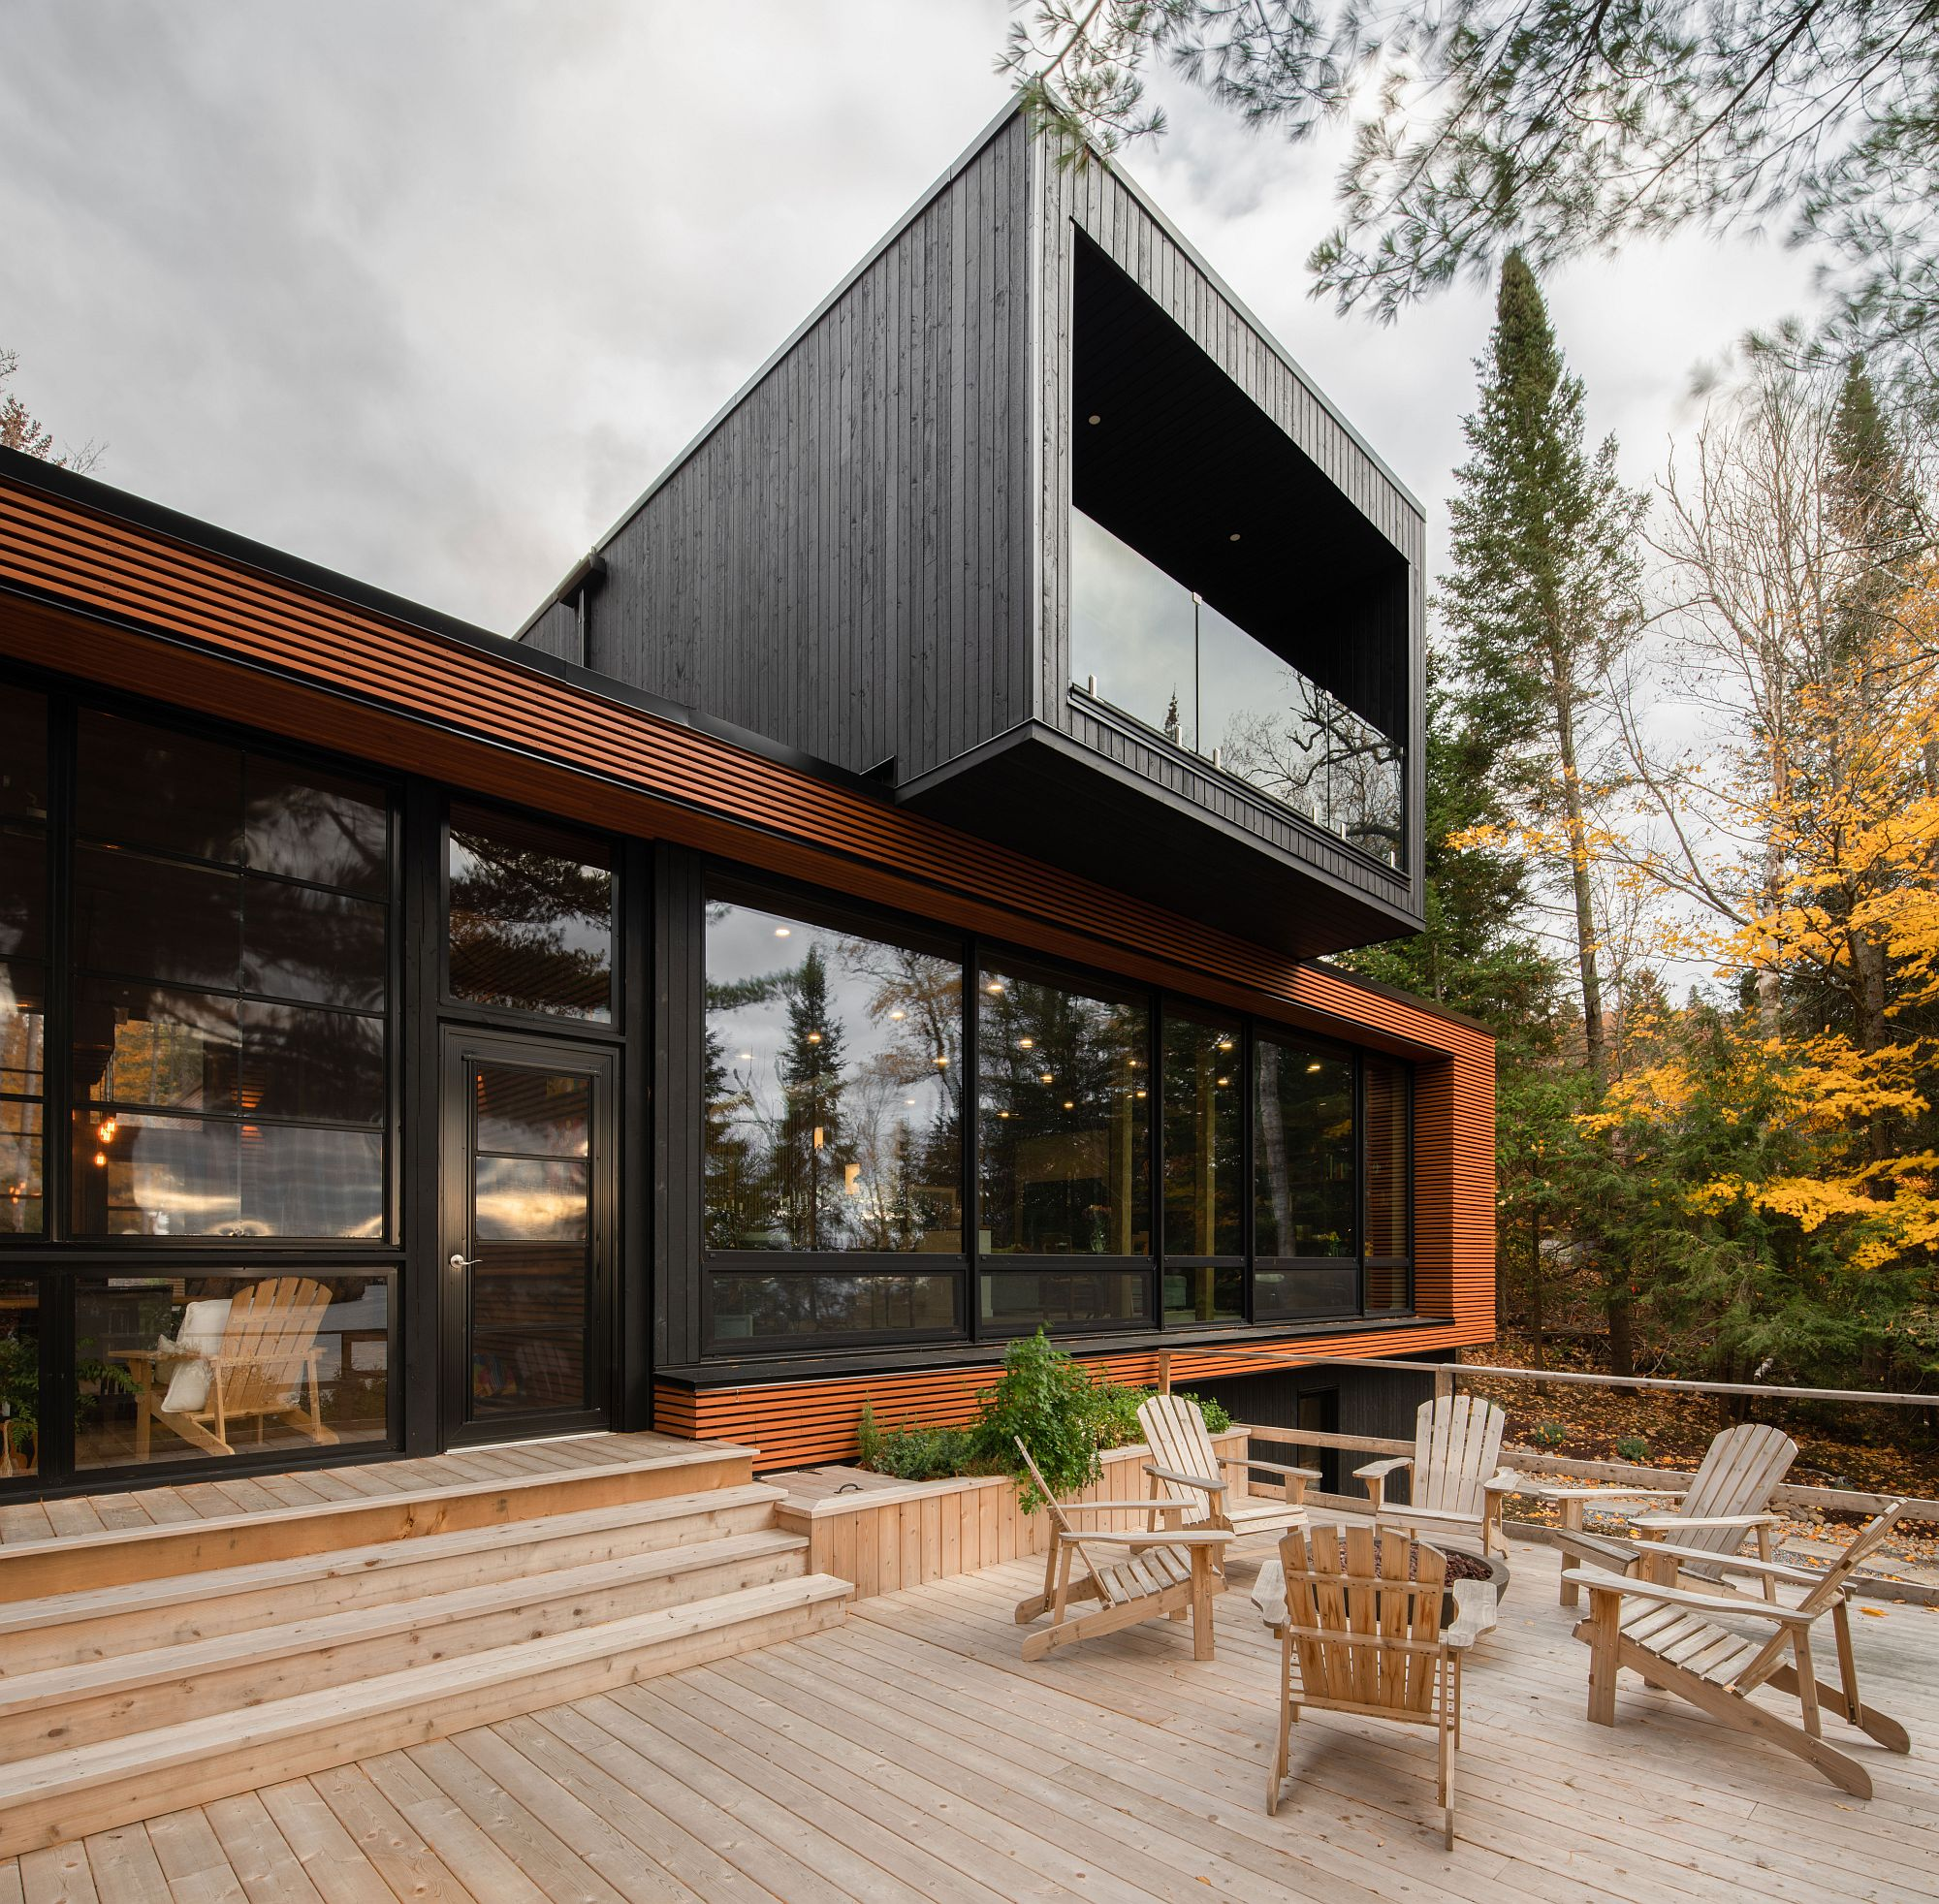 Dark, cantilevered upper level of the house stands in contrast to the lower level with natural finish